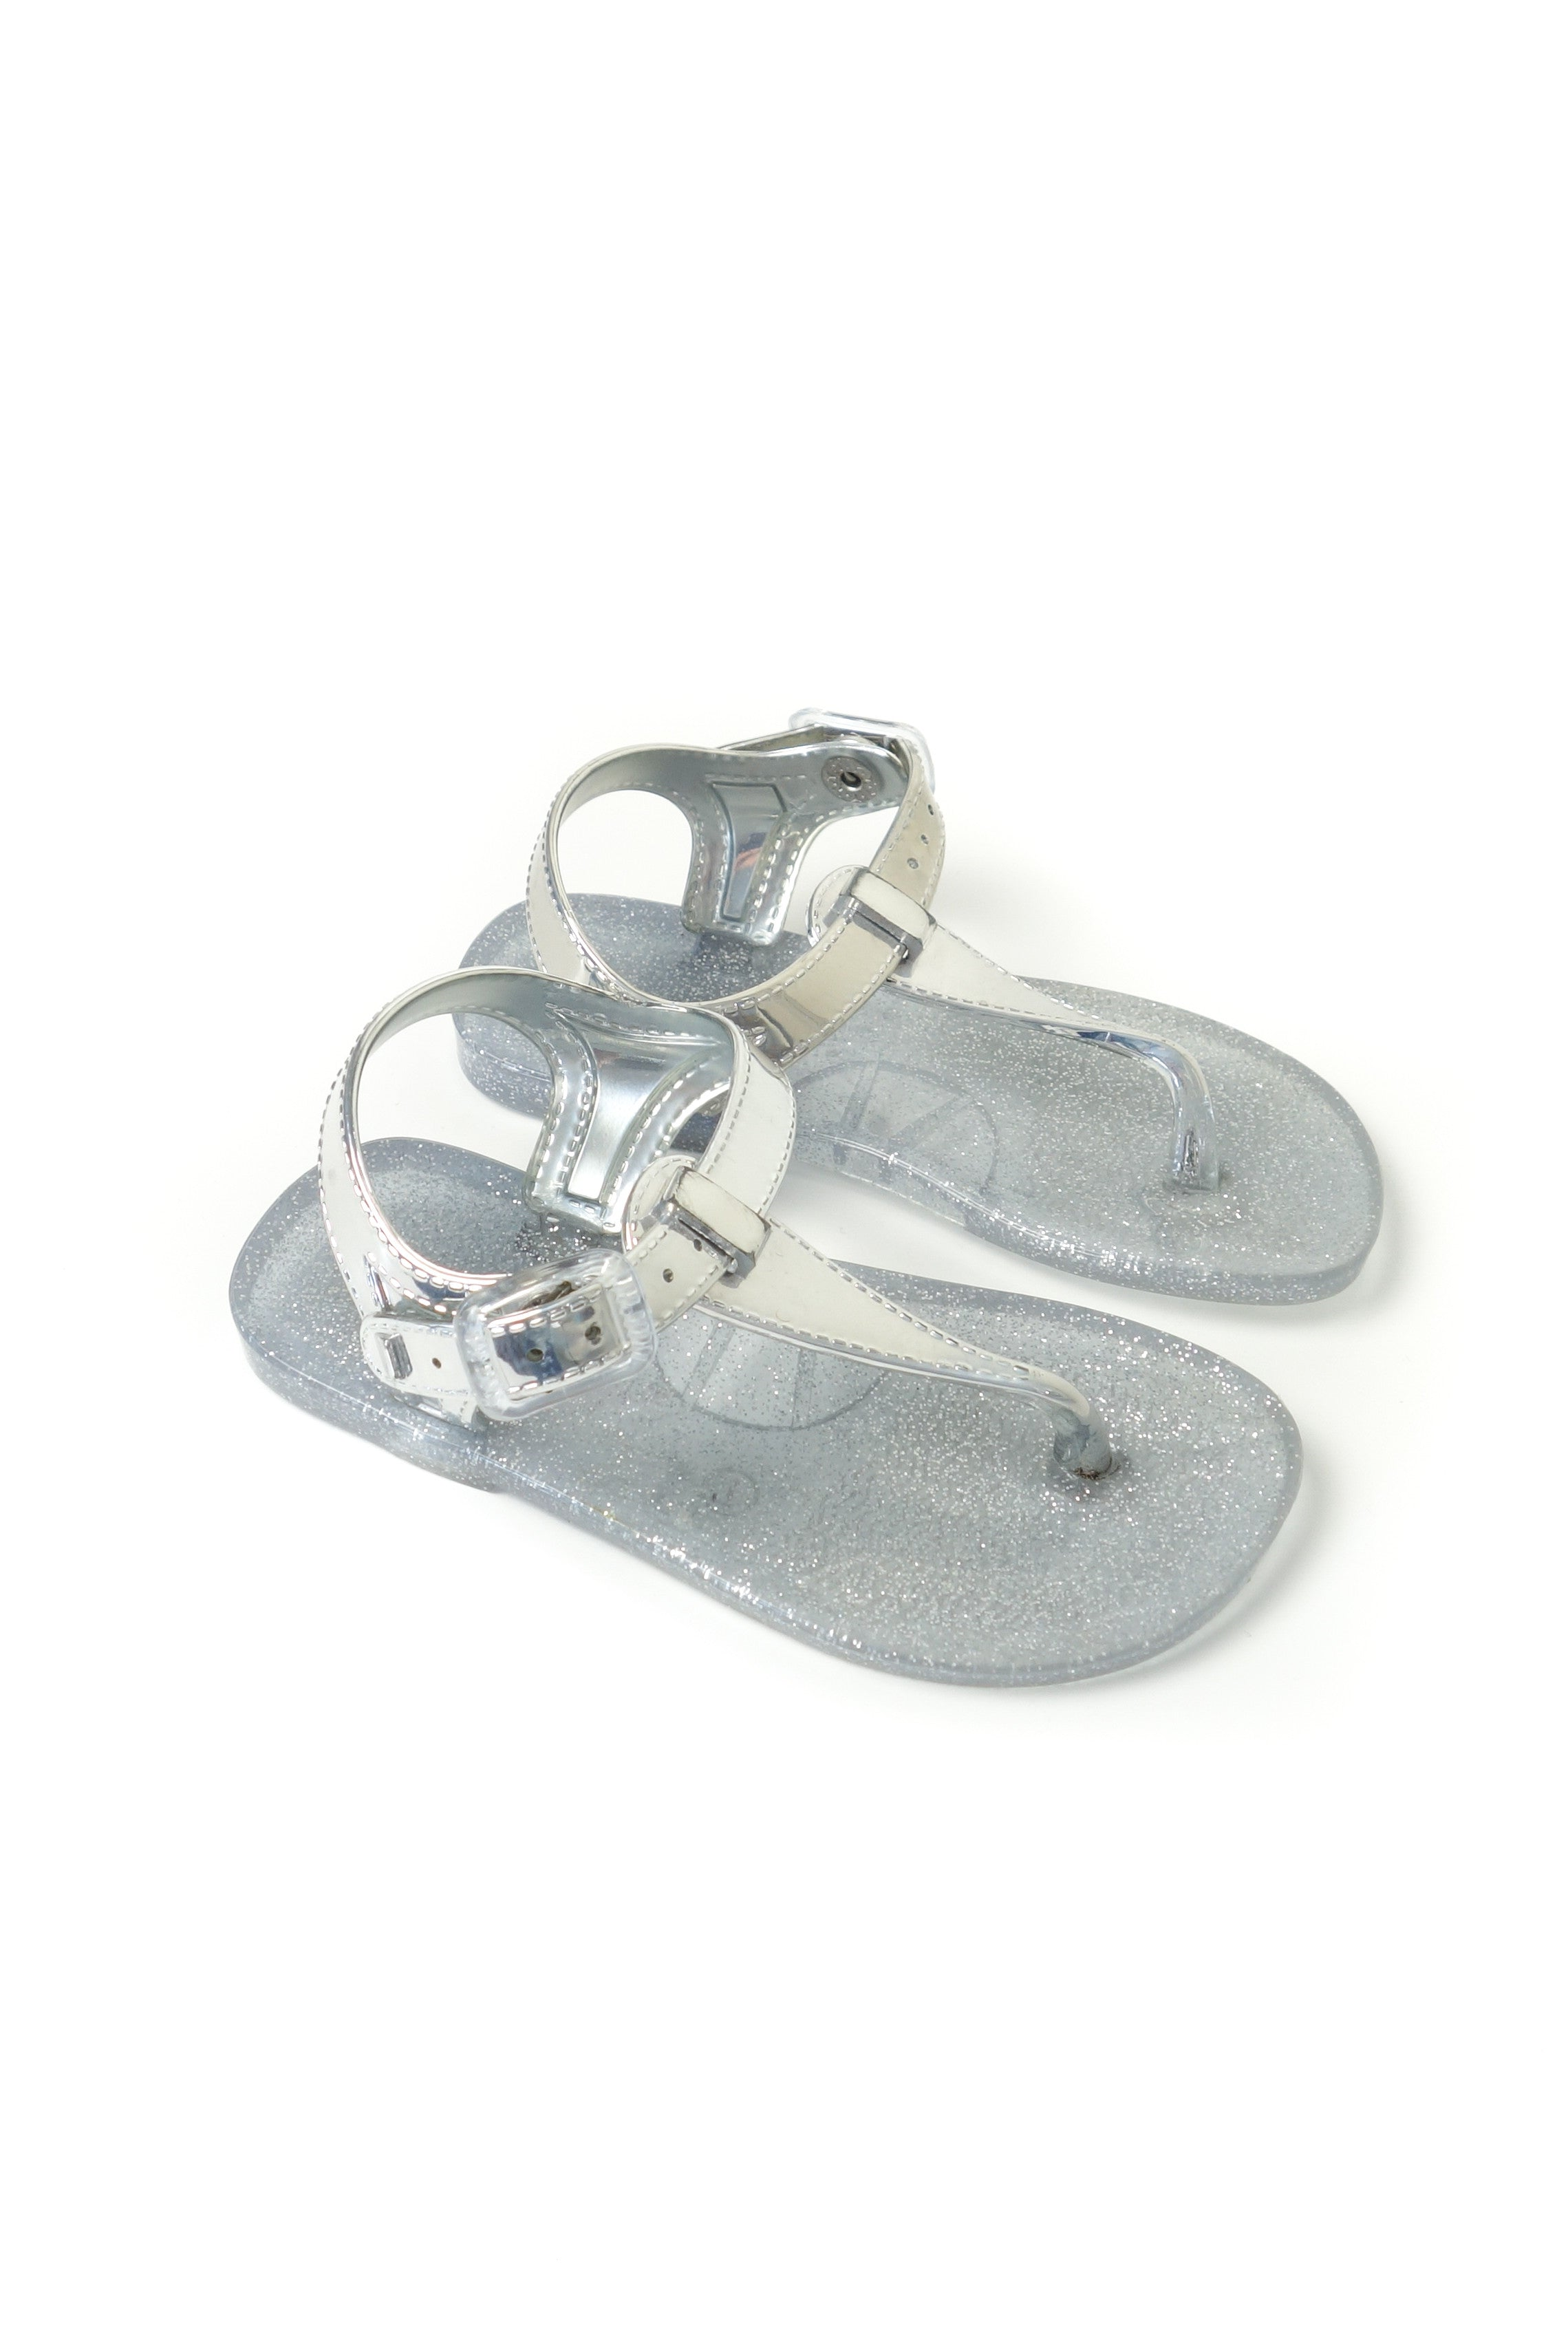 10001583 Seed Kids~Sandals 3T (EU 25) at Retykle